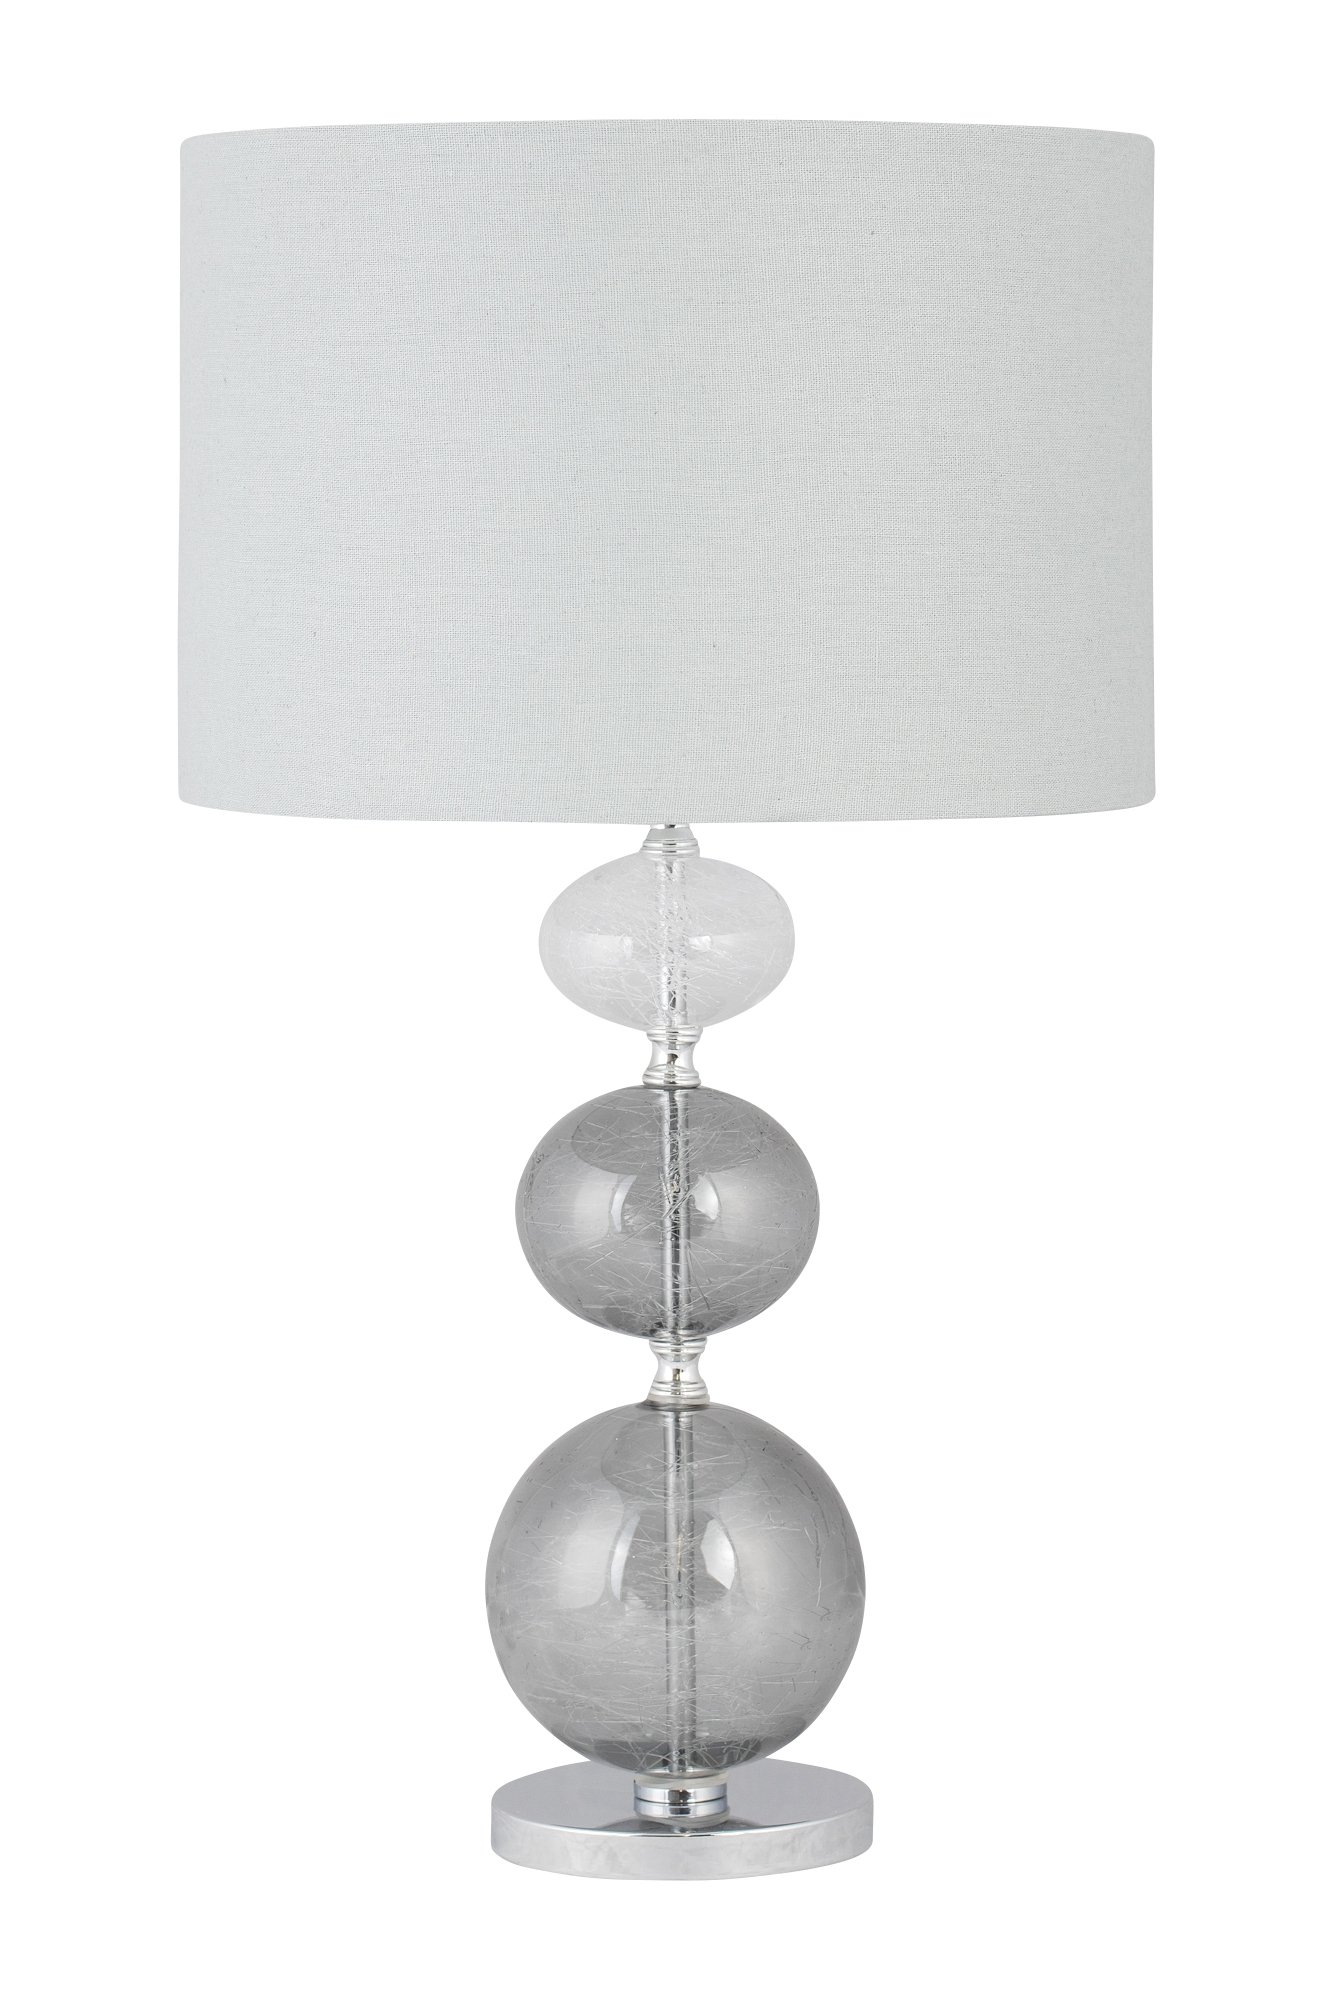 Light Grey Bedside Table: Modern Three Ball Ombre Glass 53cm Table Lamp Bedside